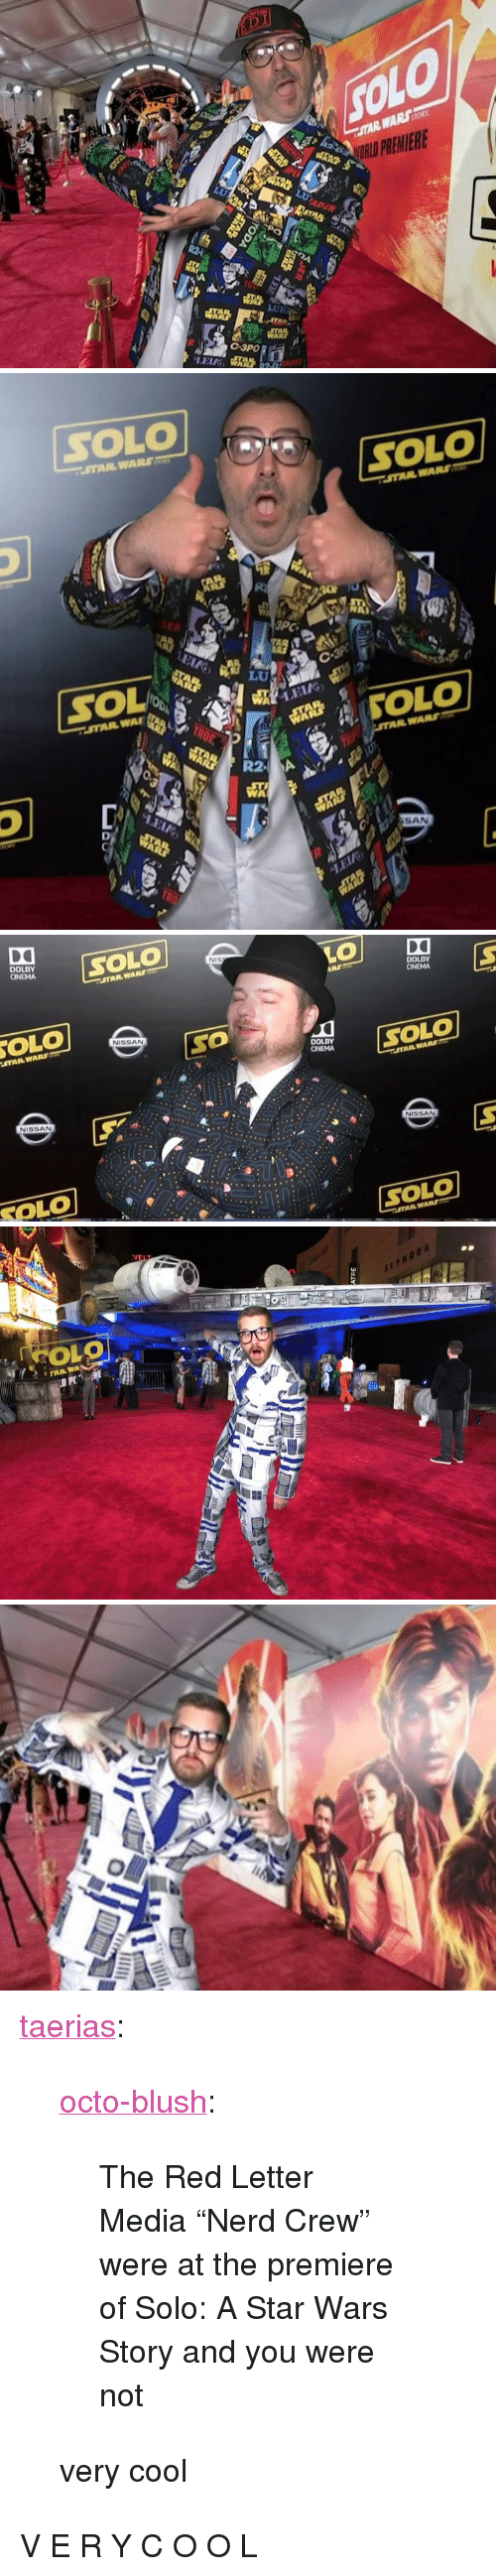 """Nerd, Star Wars, and Tumblr: STAR WARSSOR  RLD PREMIERE  LUK  ADE   SOLO  STAR WARS  SOLO  STAR WARS  NA  LEL  見WA'  R2  ห้โ  SAN   DOLBY  CINEMA  SOLO  STAR WAR  ARS  DOLBY  OLO  NISSAN  STAR WAR  SO  exOLO  DOLBY  STAR WARS  NISSAN  NİSSAN  TOLO  SOLO   OLO  SEPHORA  FAR WA <p><a href=""""http://taerias.tumblr.com/post/174039991722/octo-blush-the-red-letter-media-nerd-crew-were"""" class=""""tumblr_blog"""">taerias</a>:</p>  <blockquote><p><a href=""""http://octo-blush.tumblr.com/post/173956546052/the-red-letter-media-nerd-crew-were-at-the"""" class=""""tumblr_blog"""">octo-blush</a>:</p> <blockquote><p>The Red Letter Media """"Nerd Crew"""" were at the premiere of Solo: A Star Wars Story and you were not</p></blockquote> <p>very cool</p></blockquote>  <p class=""""npf_quote"""" data-npf='{""""subtype"""":""""quote""""}'>V E R Y  C O O L</p>"""